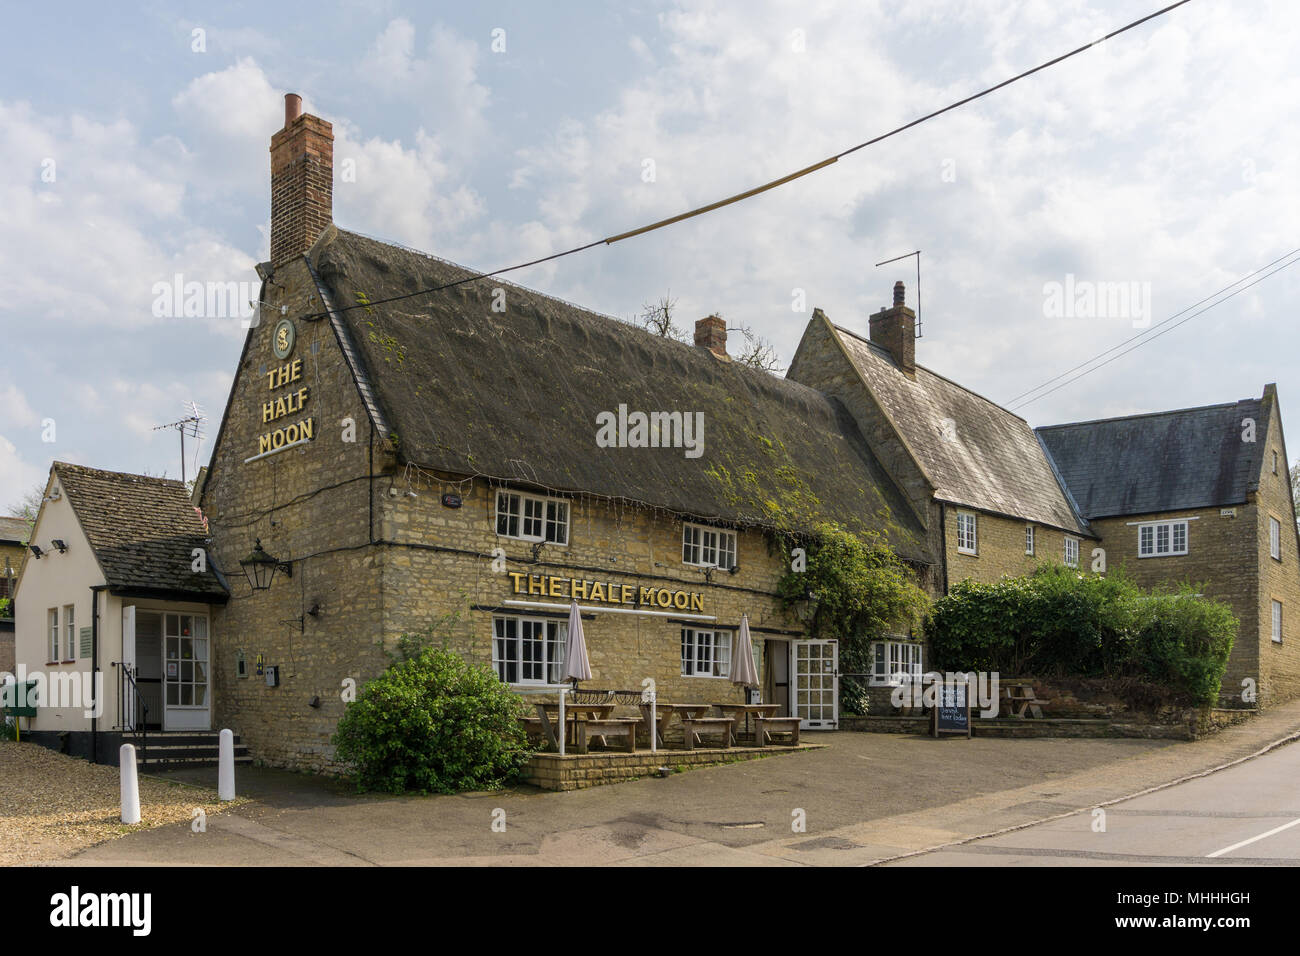 The Half Moon, a traditional thatched pub, in the Northamptonshire village of Grendon, UK - Stock Image